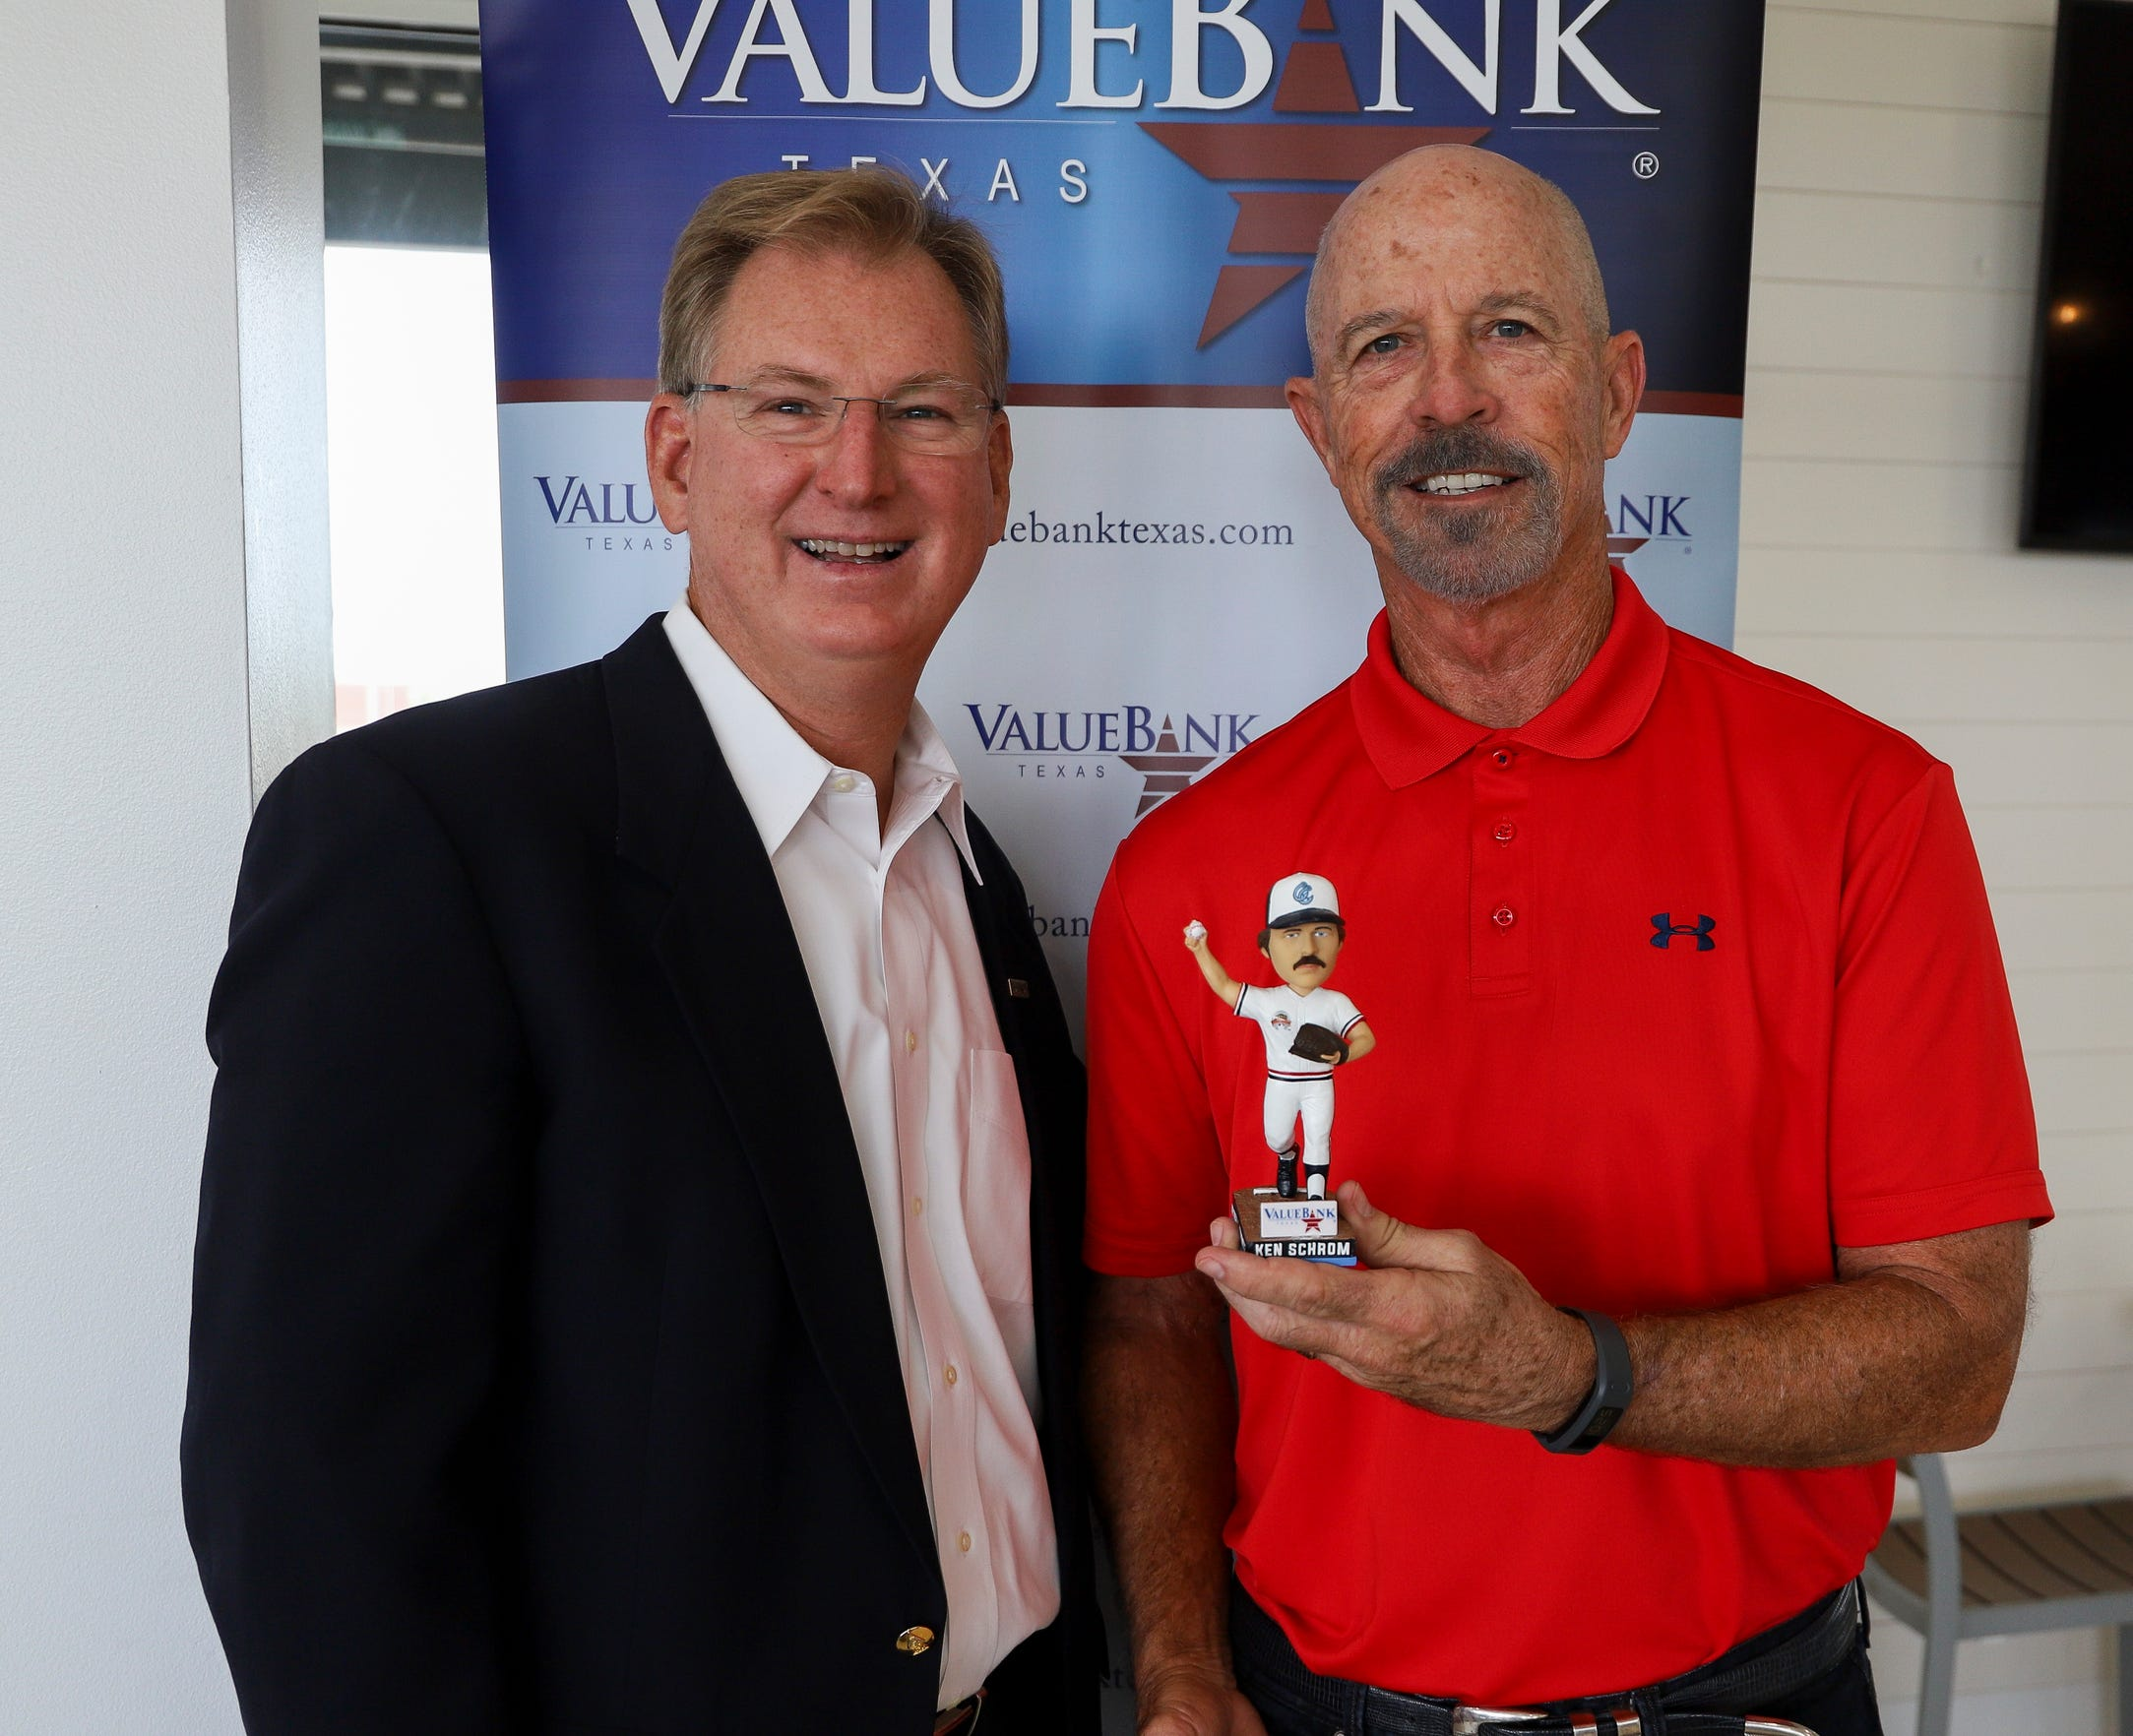 It is the first time Ken Schrom will have a bobblehead to honor him in his 40-plus year career in professional baseball. The bobblehead will be a giveaway at the Sept. 1 Hooks game.